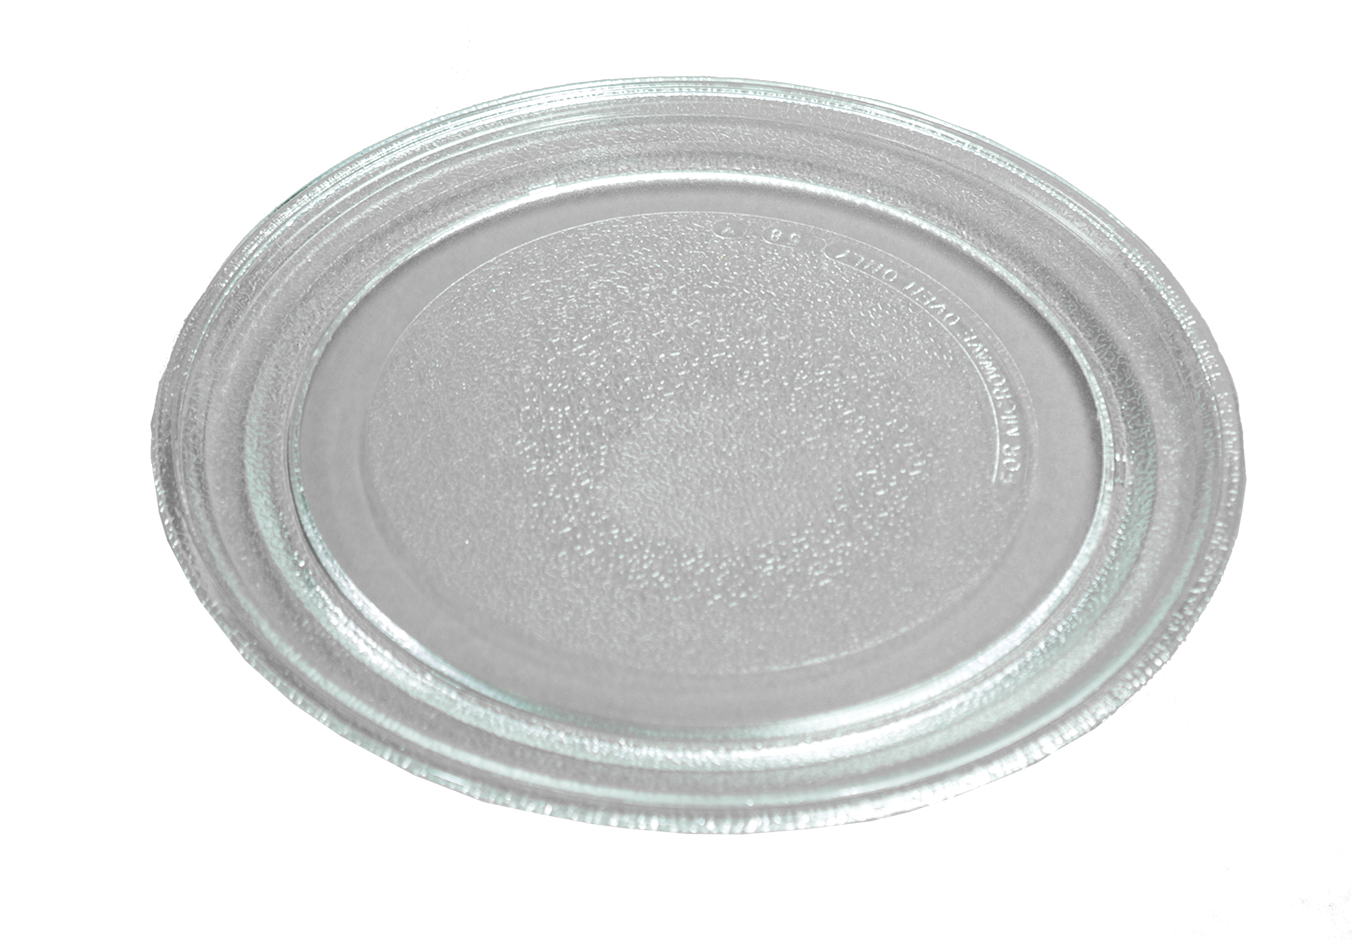 LG Microwave Glass Tray 3390W1A035D